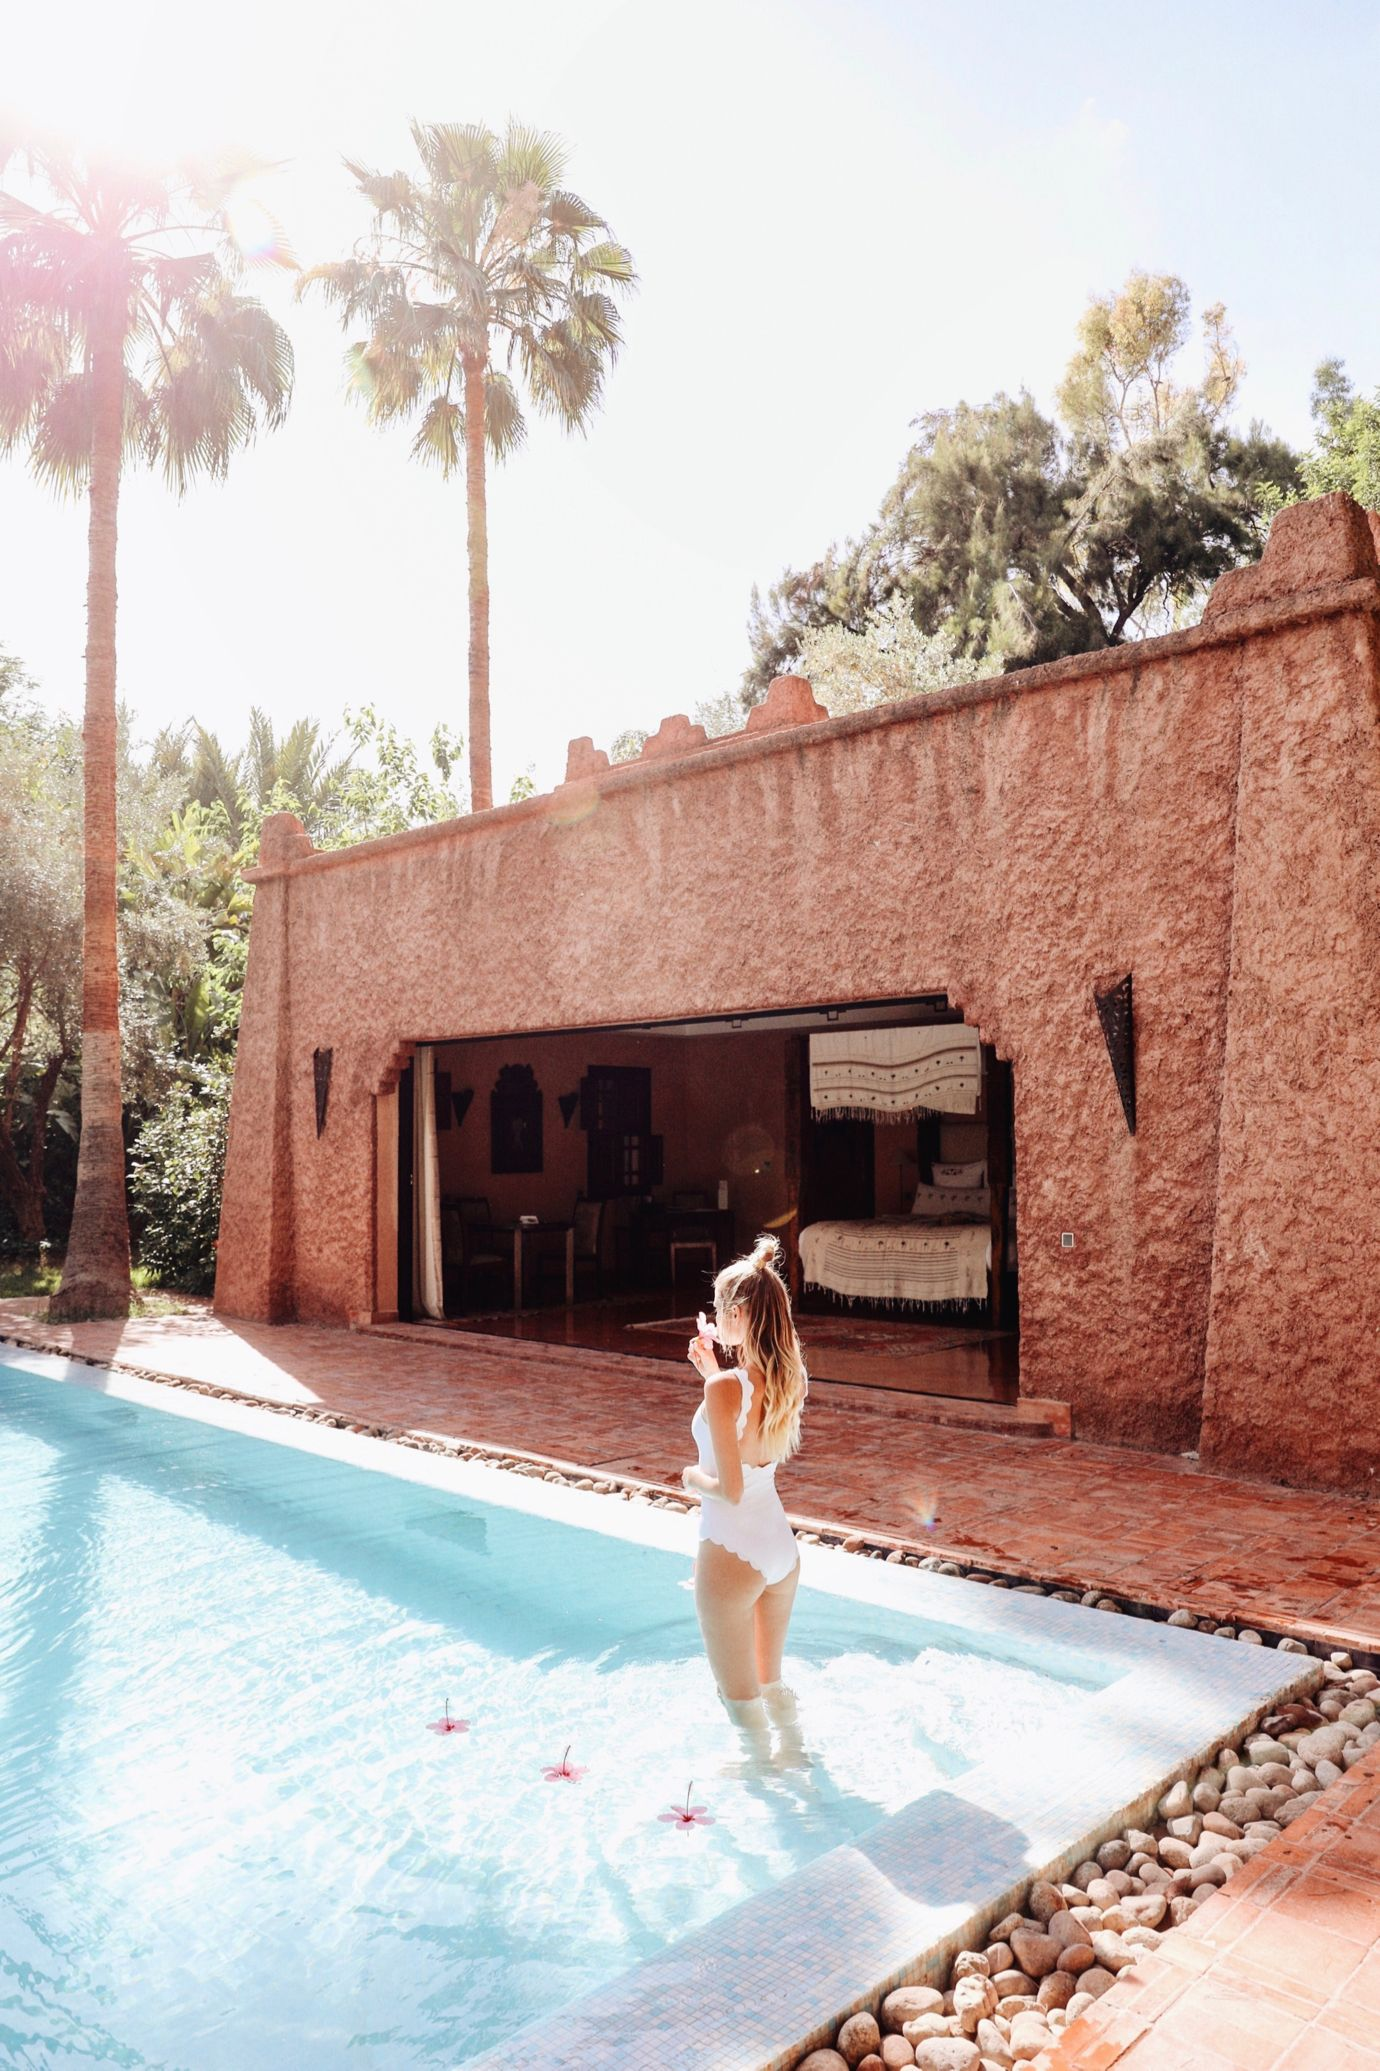 By the Pool, Es Saadi Palace | Marrakech: http://www.ohhcouture.com/2017/06/es-saadi-palace-marrakech/ #leoniehanne #ohhcouture